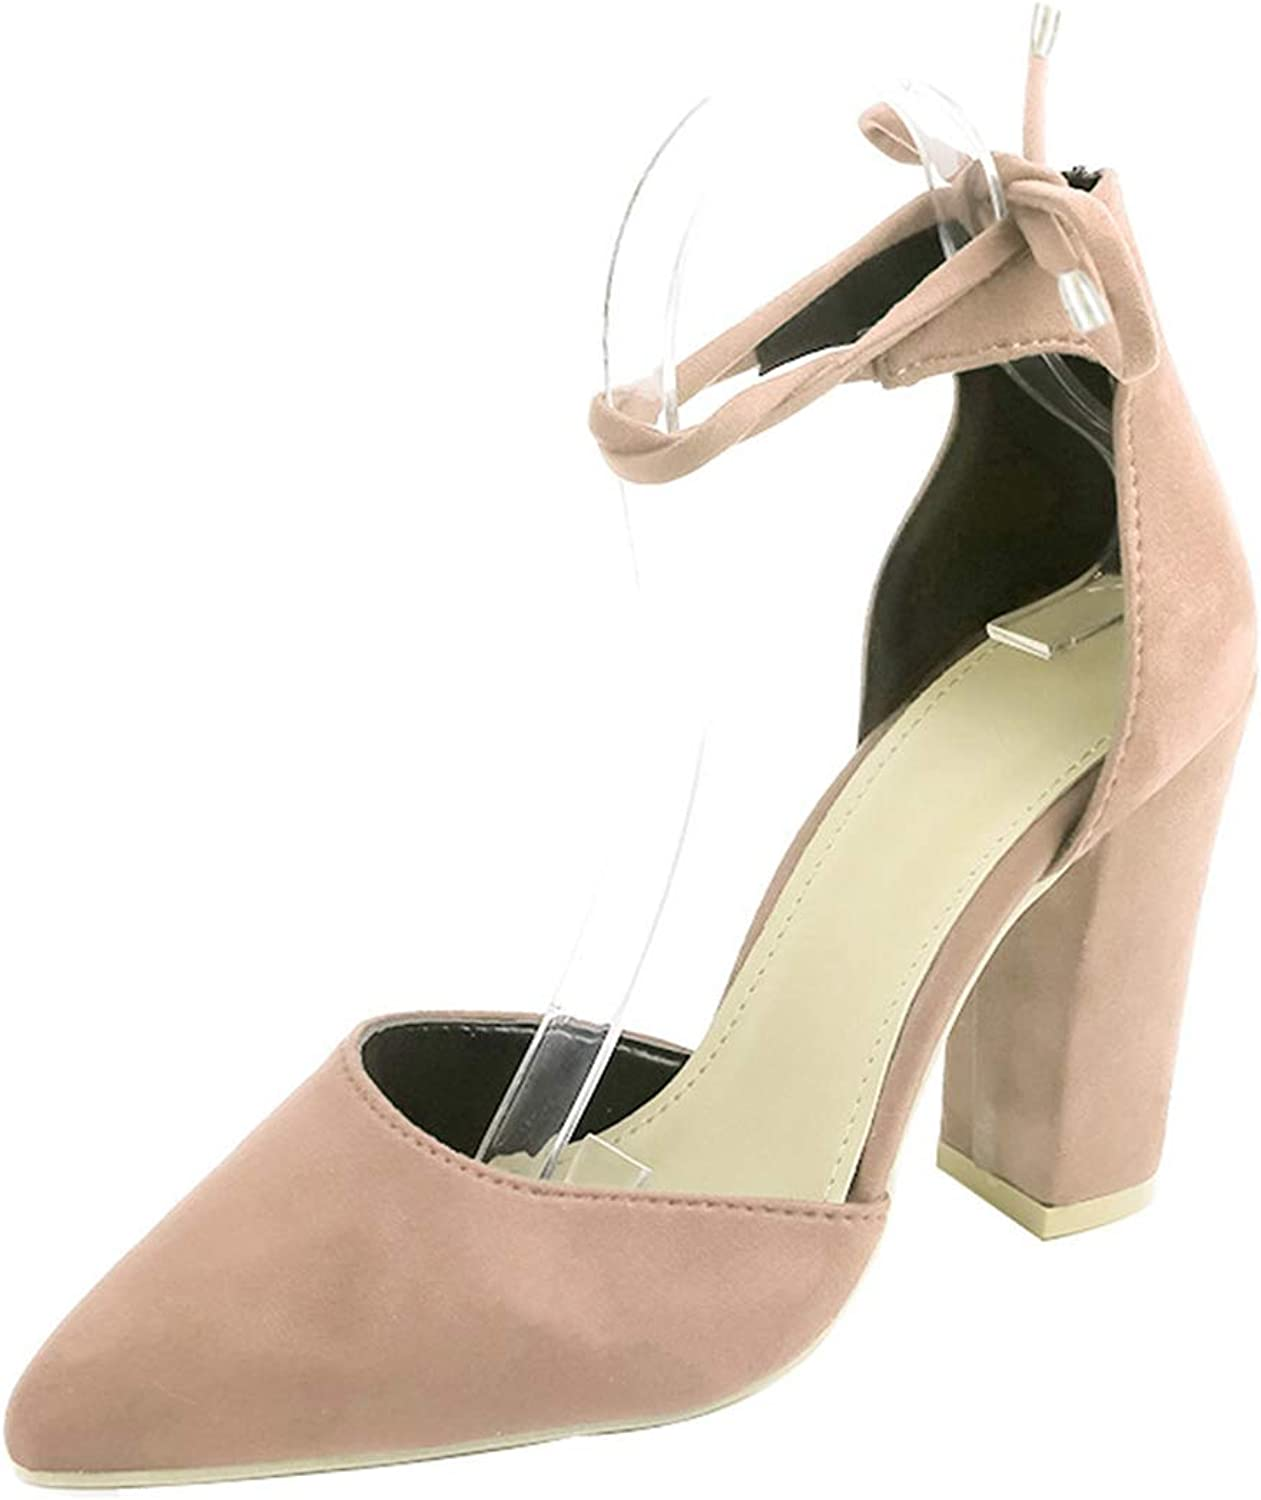 Owen Moll Women Pumps, Sexy High Square Heels Lace Up Flock Pointed Party shoes